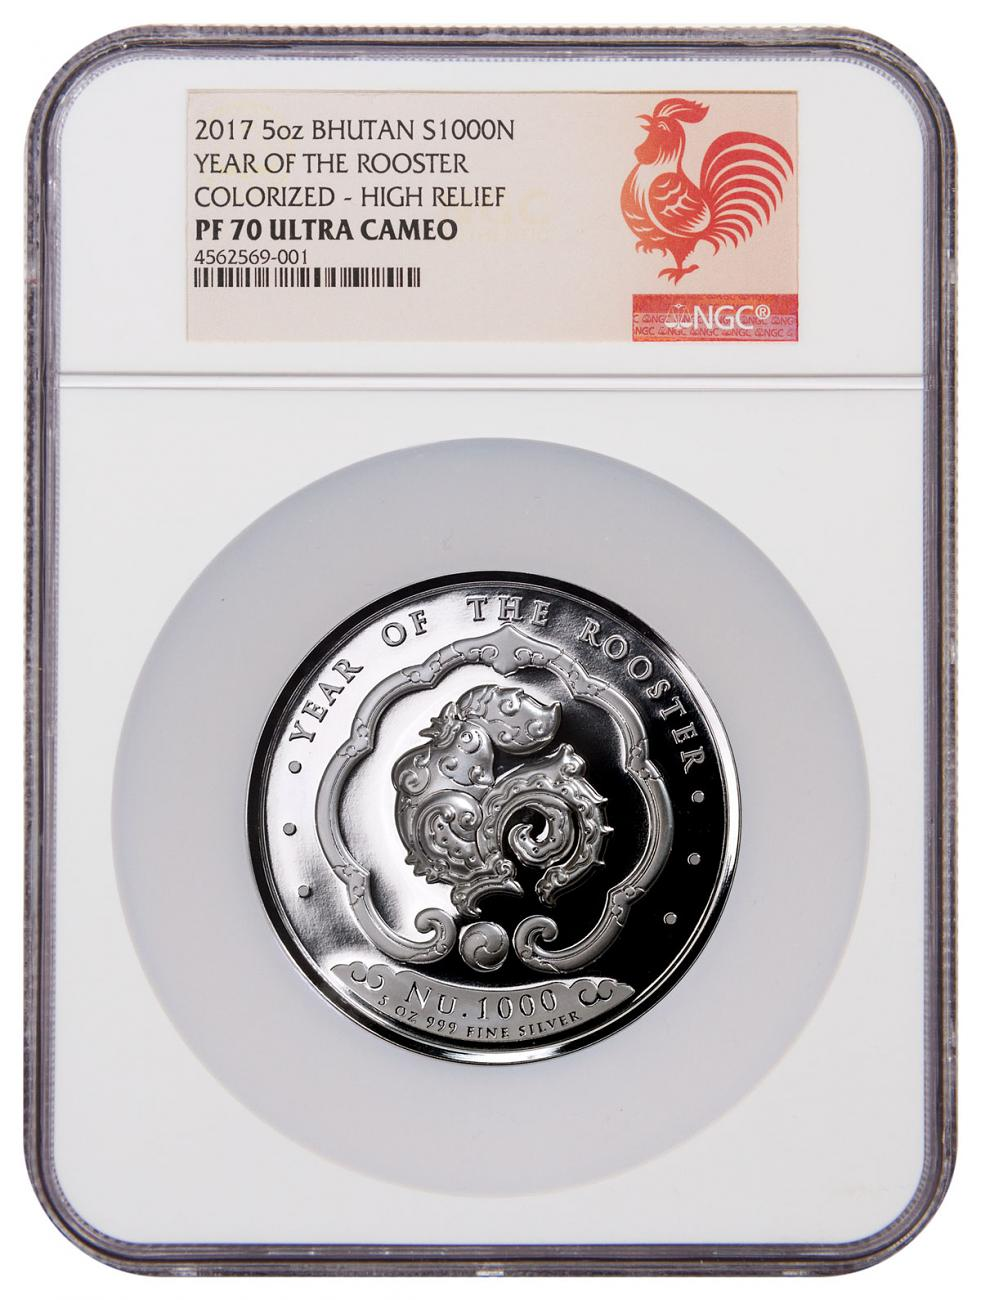 2017 Kingdom of Bhutan 5 oz High Relief Silver Lunar - Rooster Colorized Proof 1,000 Coin NGC PF70 UC Year of the Rooster Label